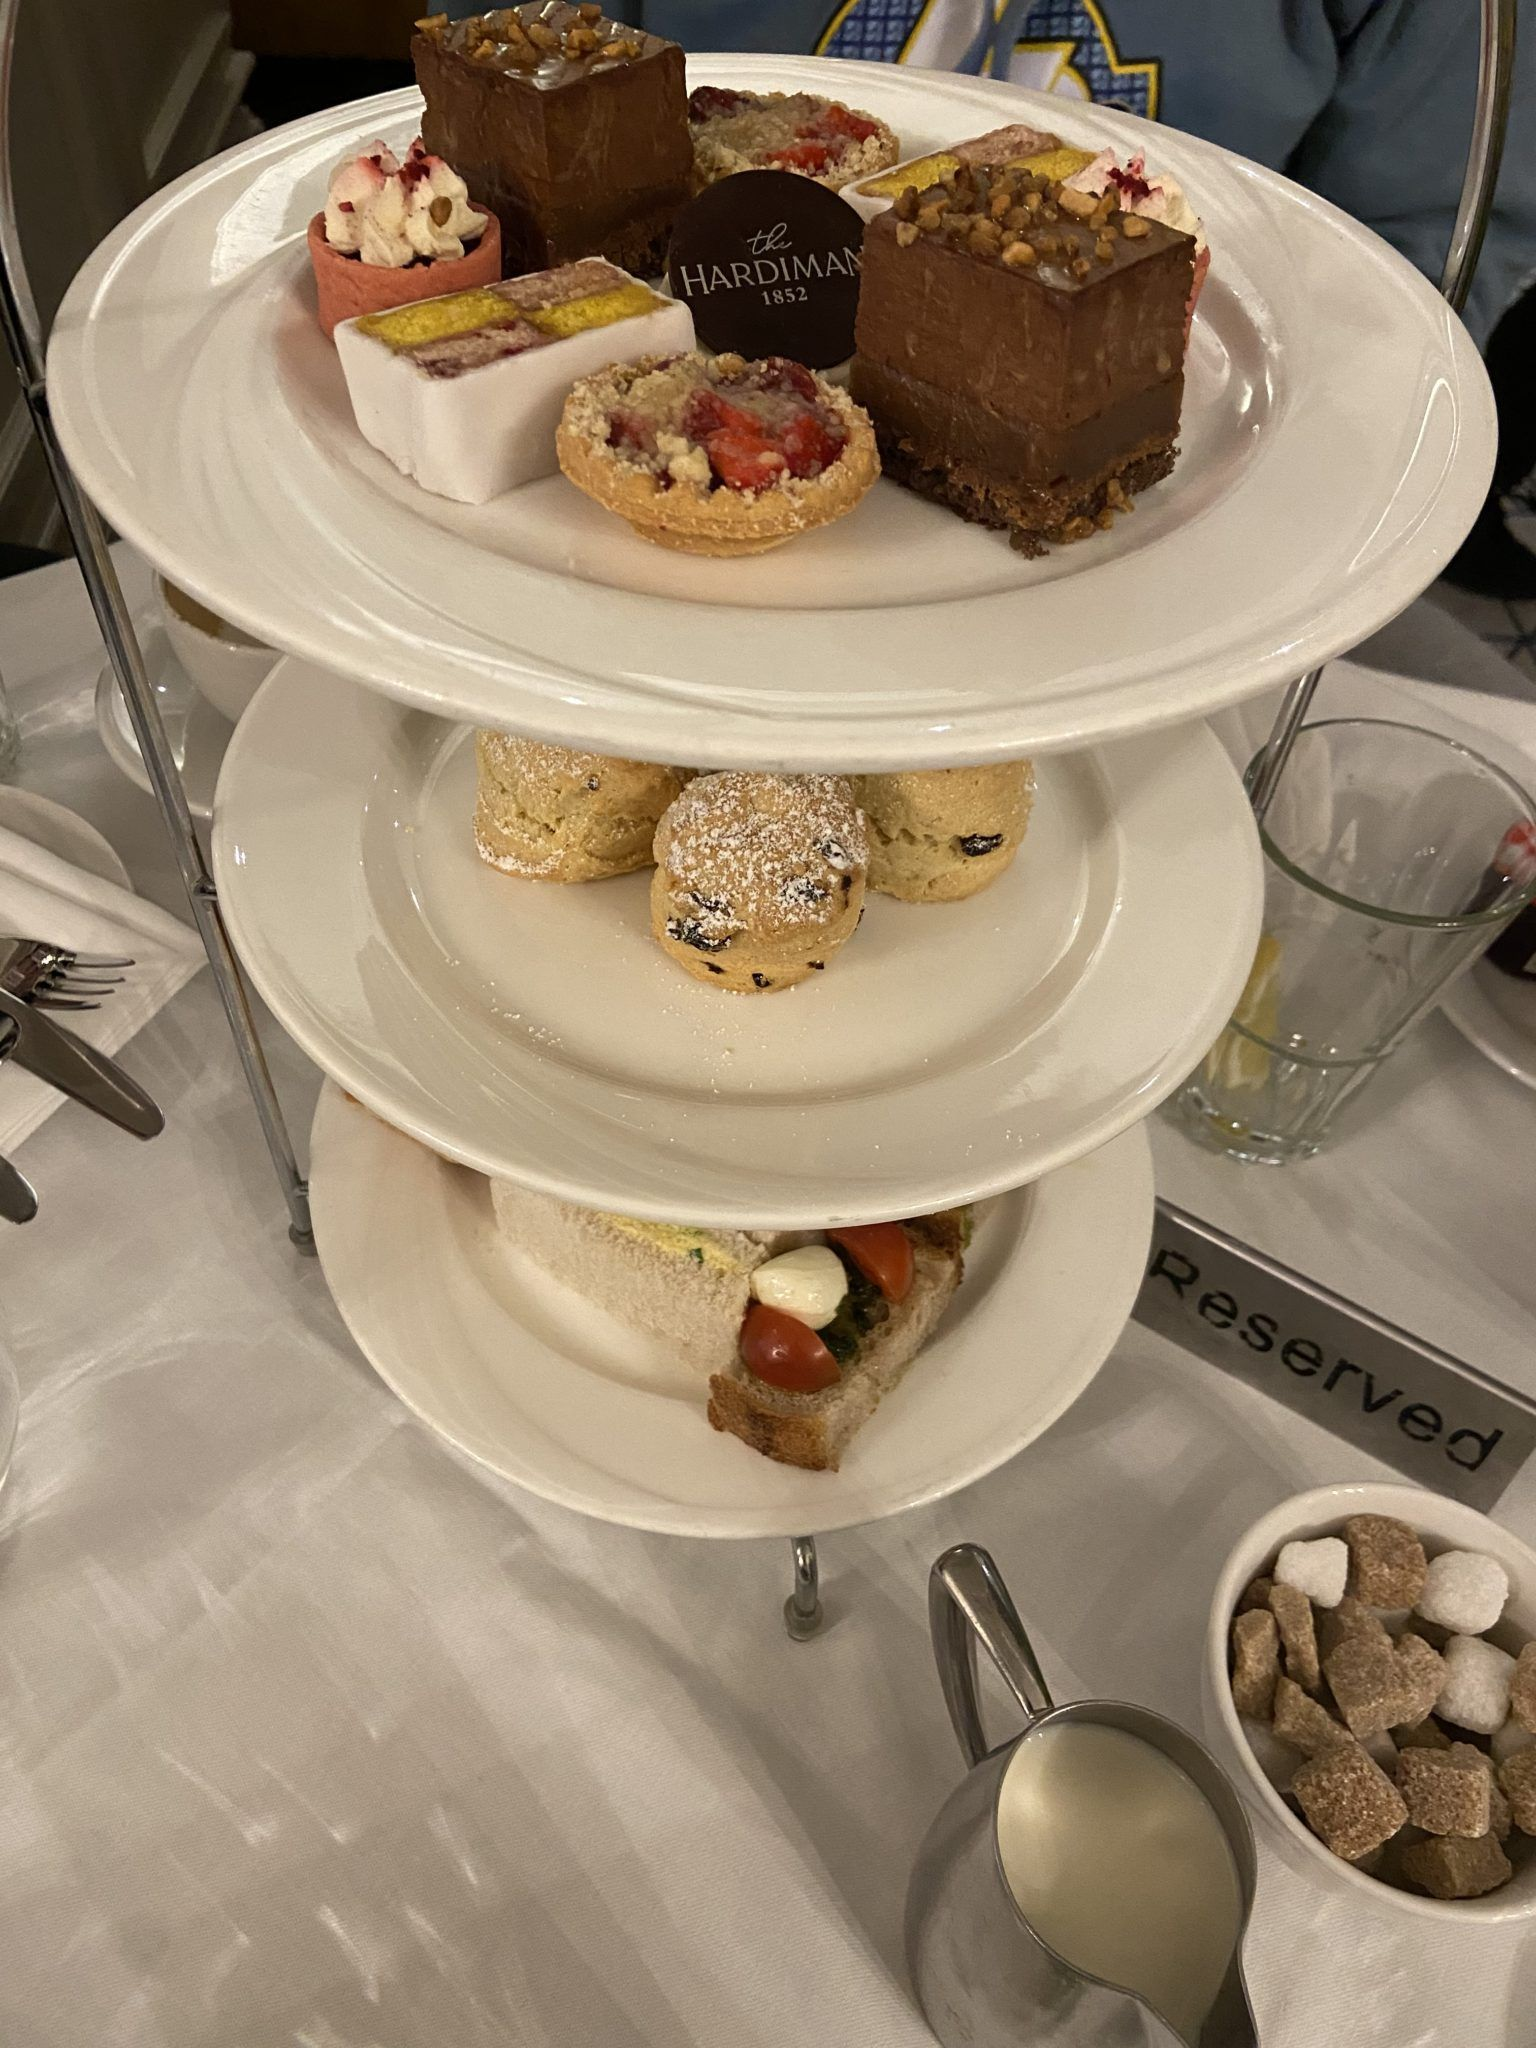 The Hardiman afternoon tea